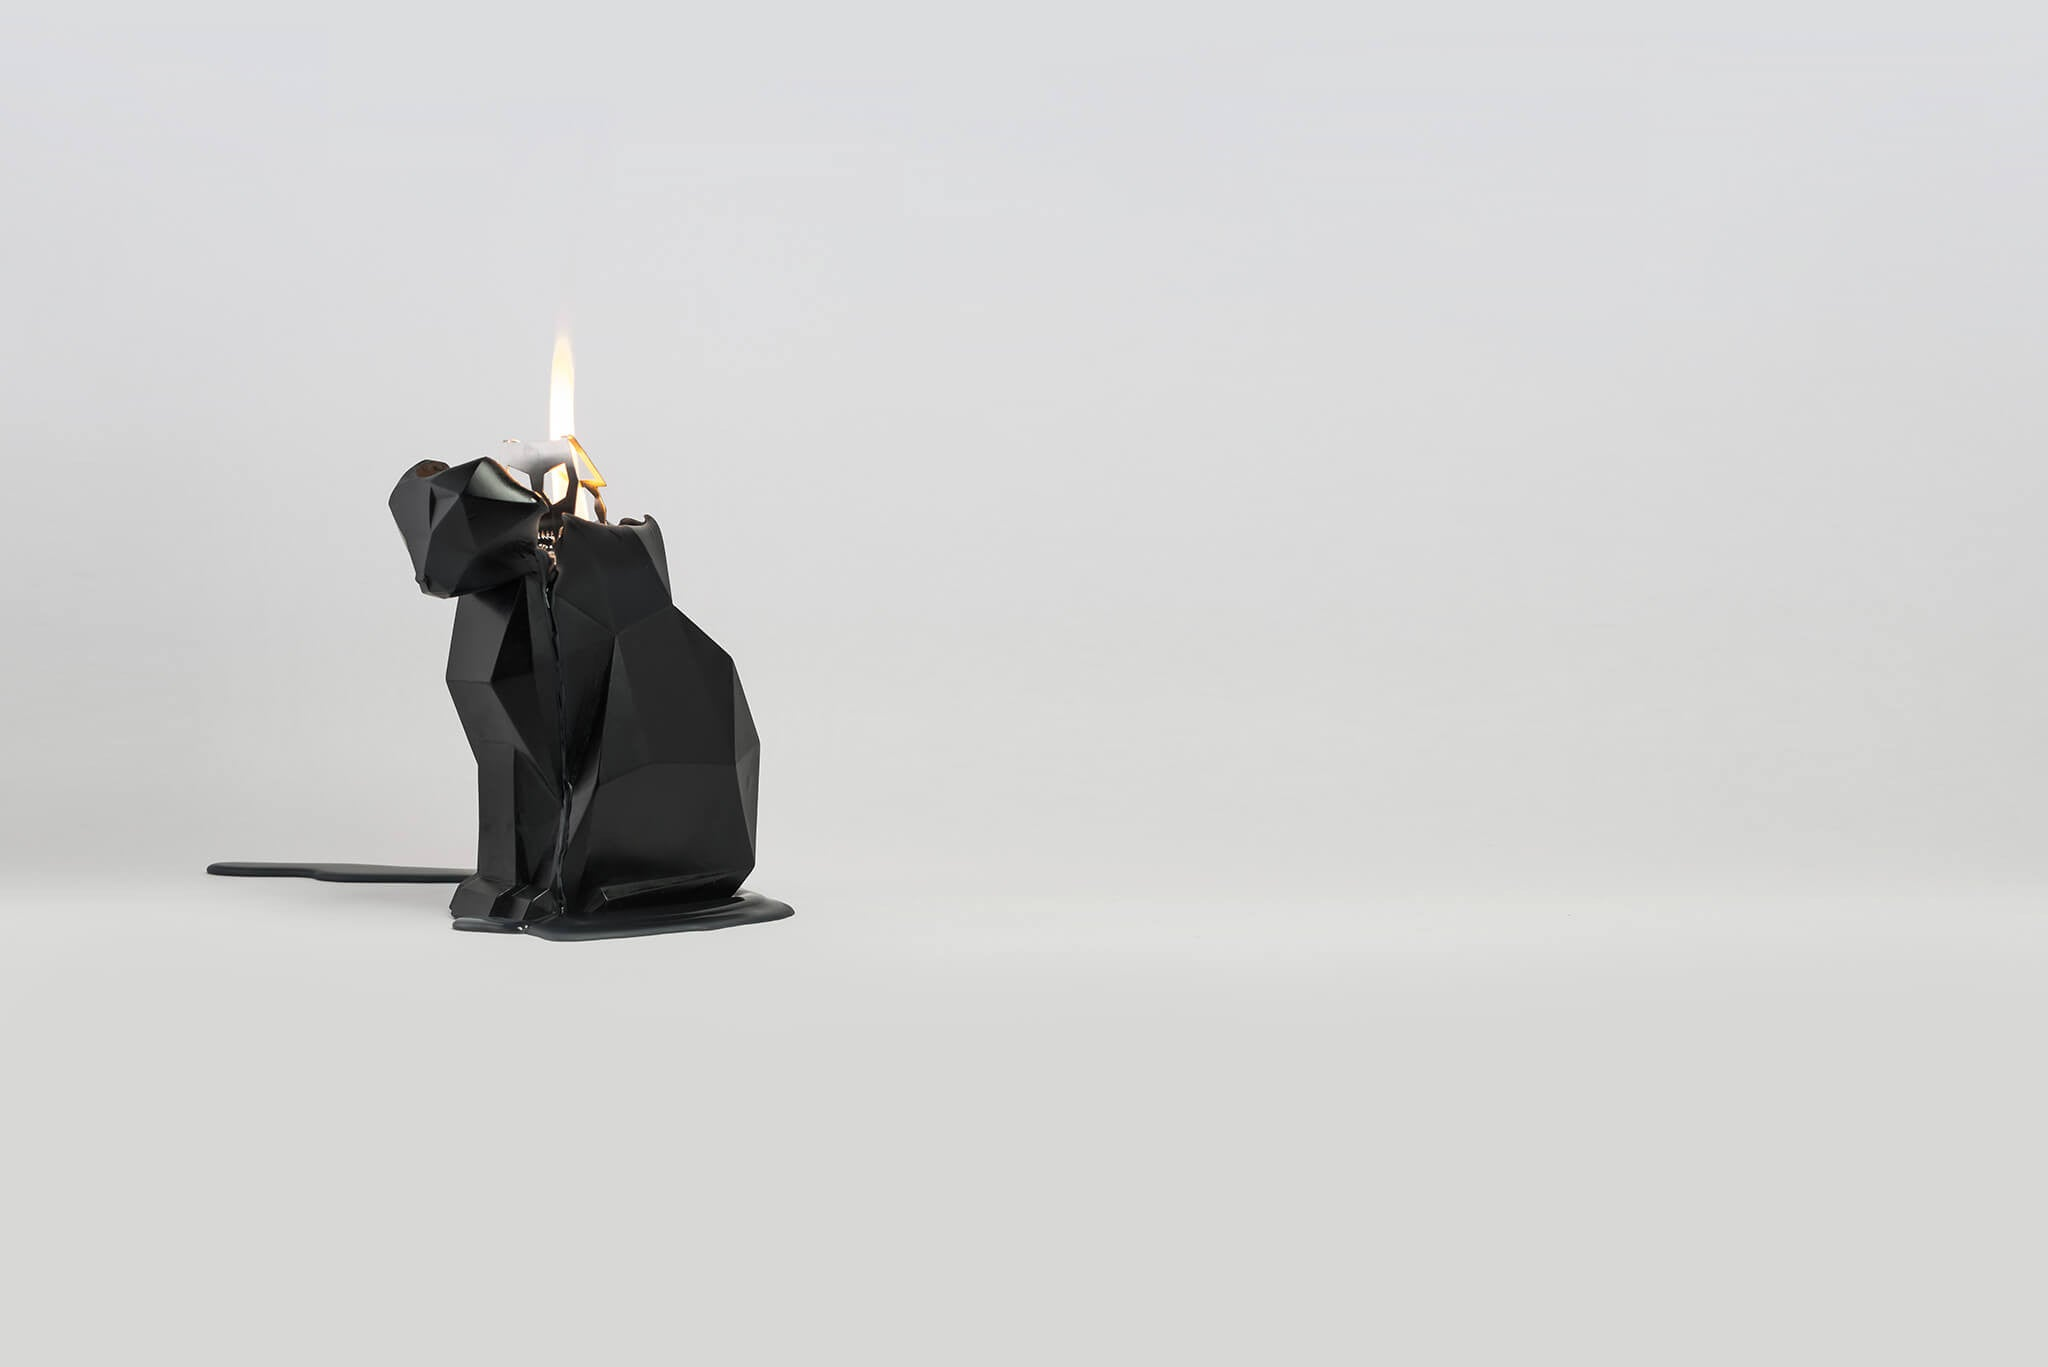 Side view of black kisa the cat shaped candle burning to reveal secret metal skeleton.